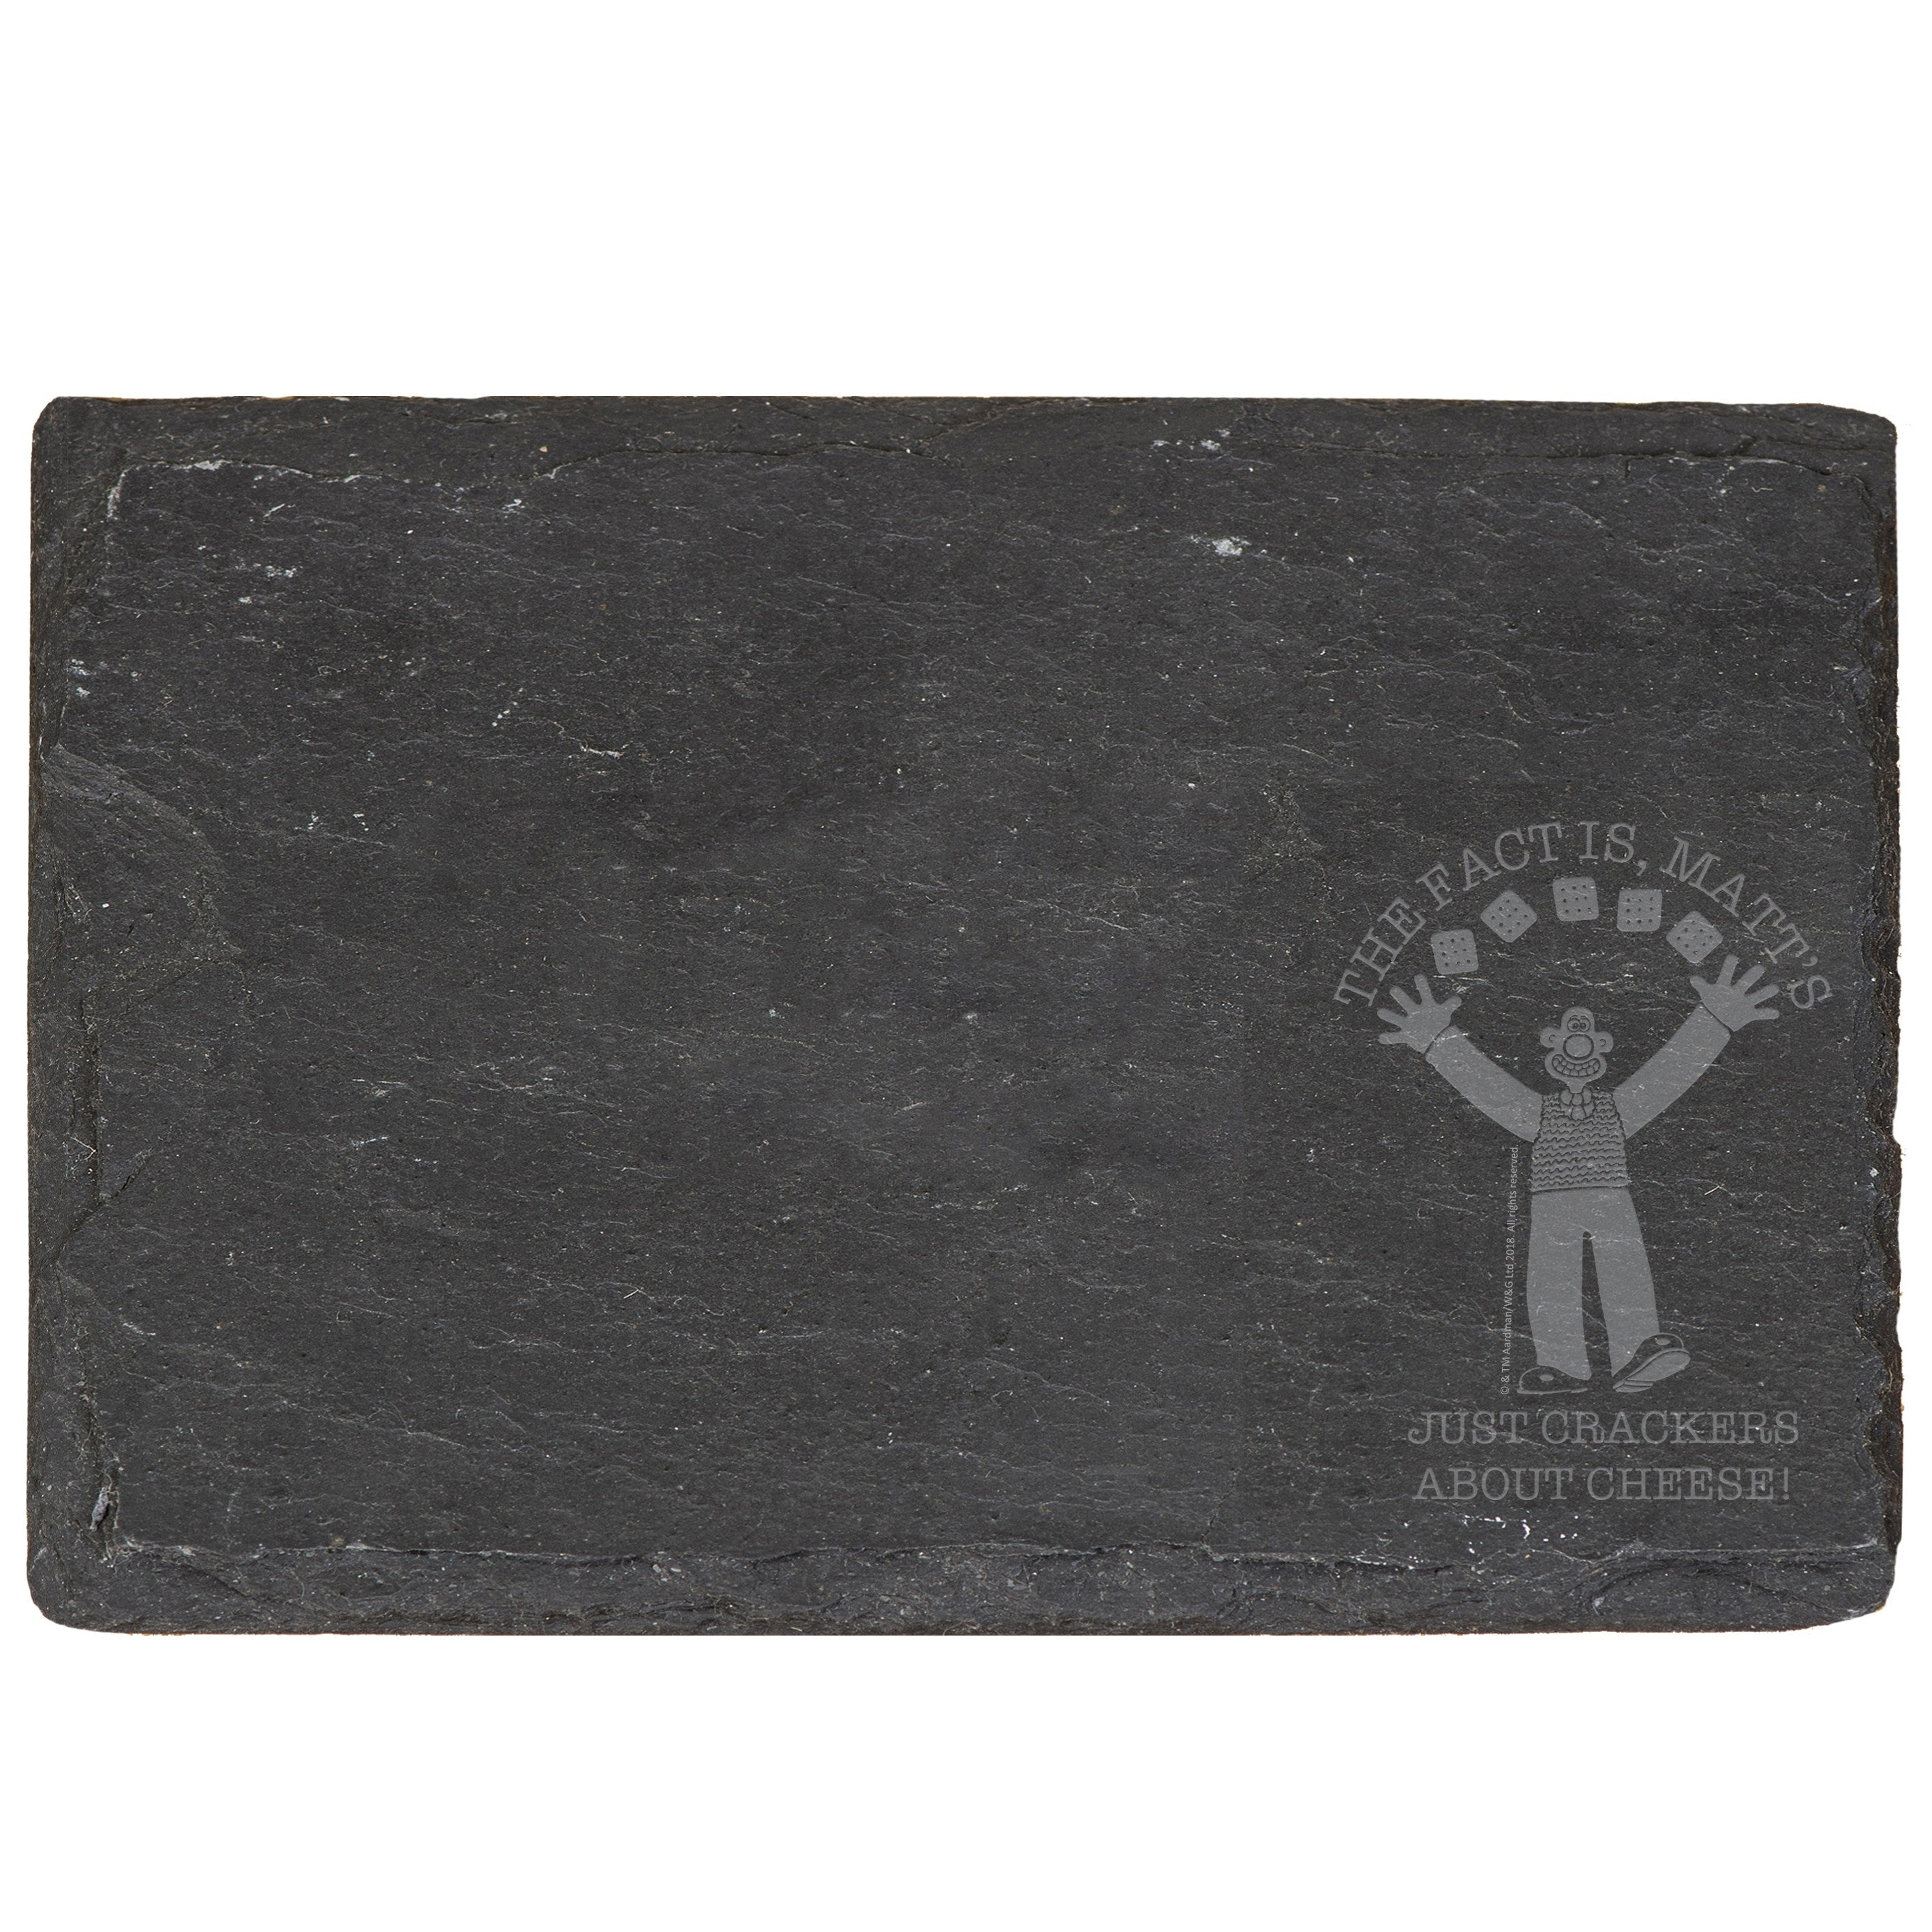 Wallace & Gromit Crackers About Cheese Slate Cheese Board, Cheese - Image 1